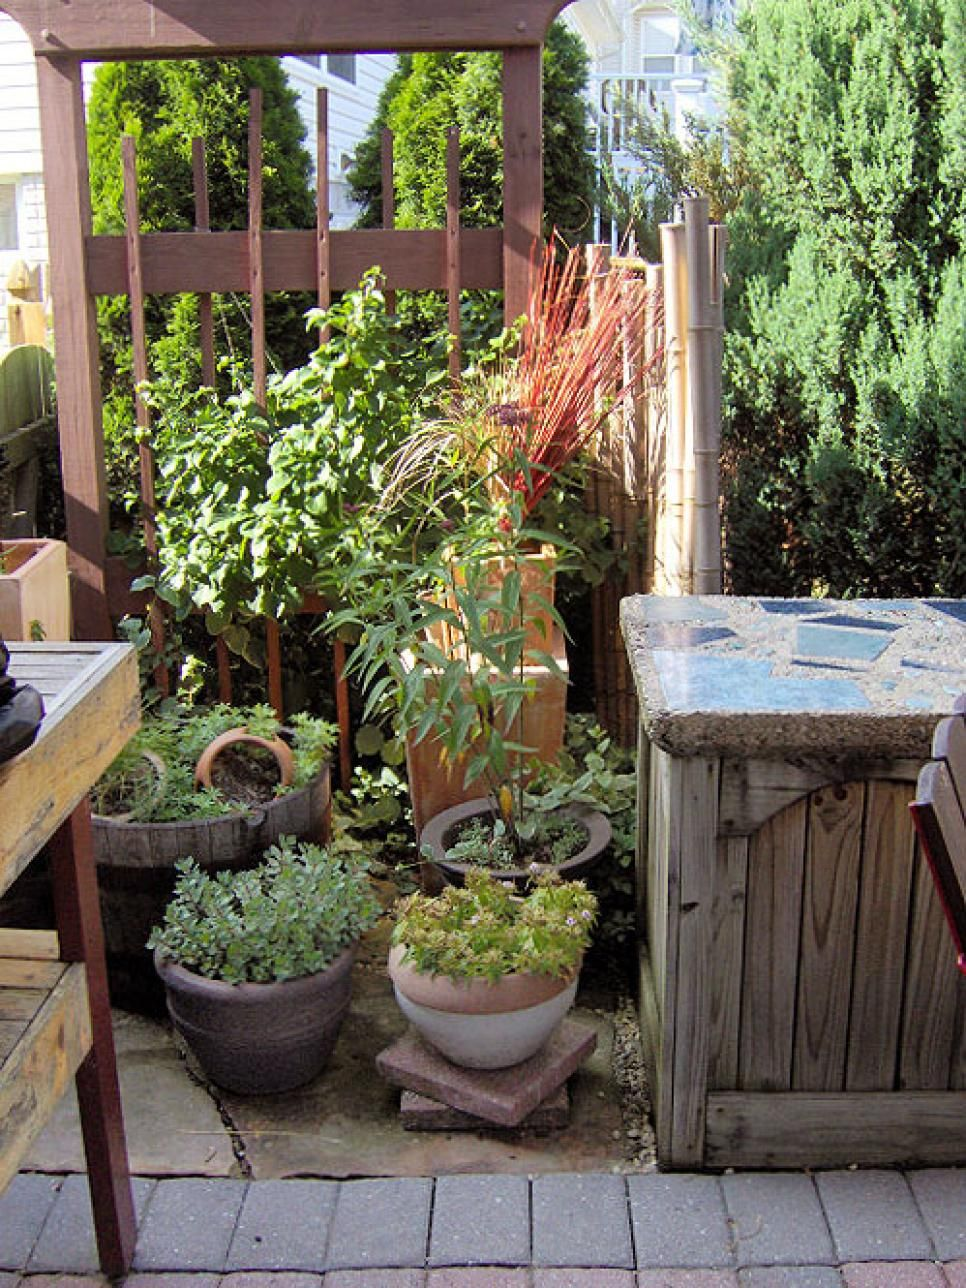 Plants for Privacy | Container plants, Decks and Backyards